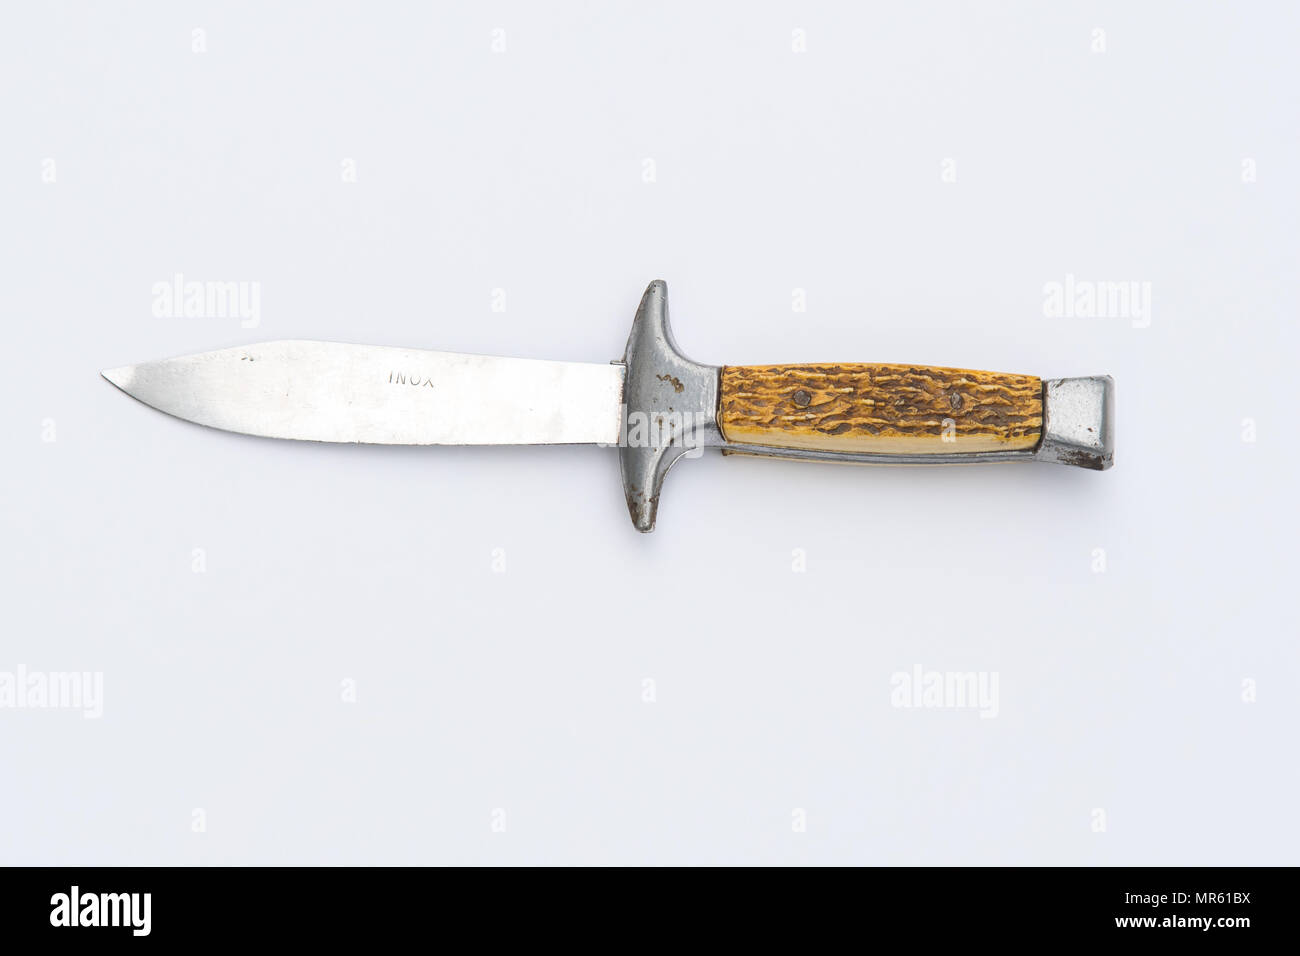 INOX 1970s scout knife - Stock Image